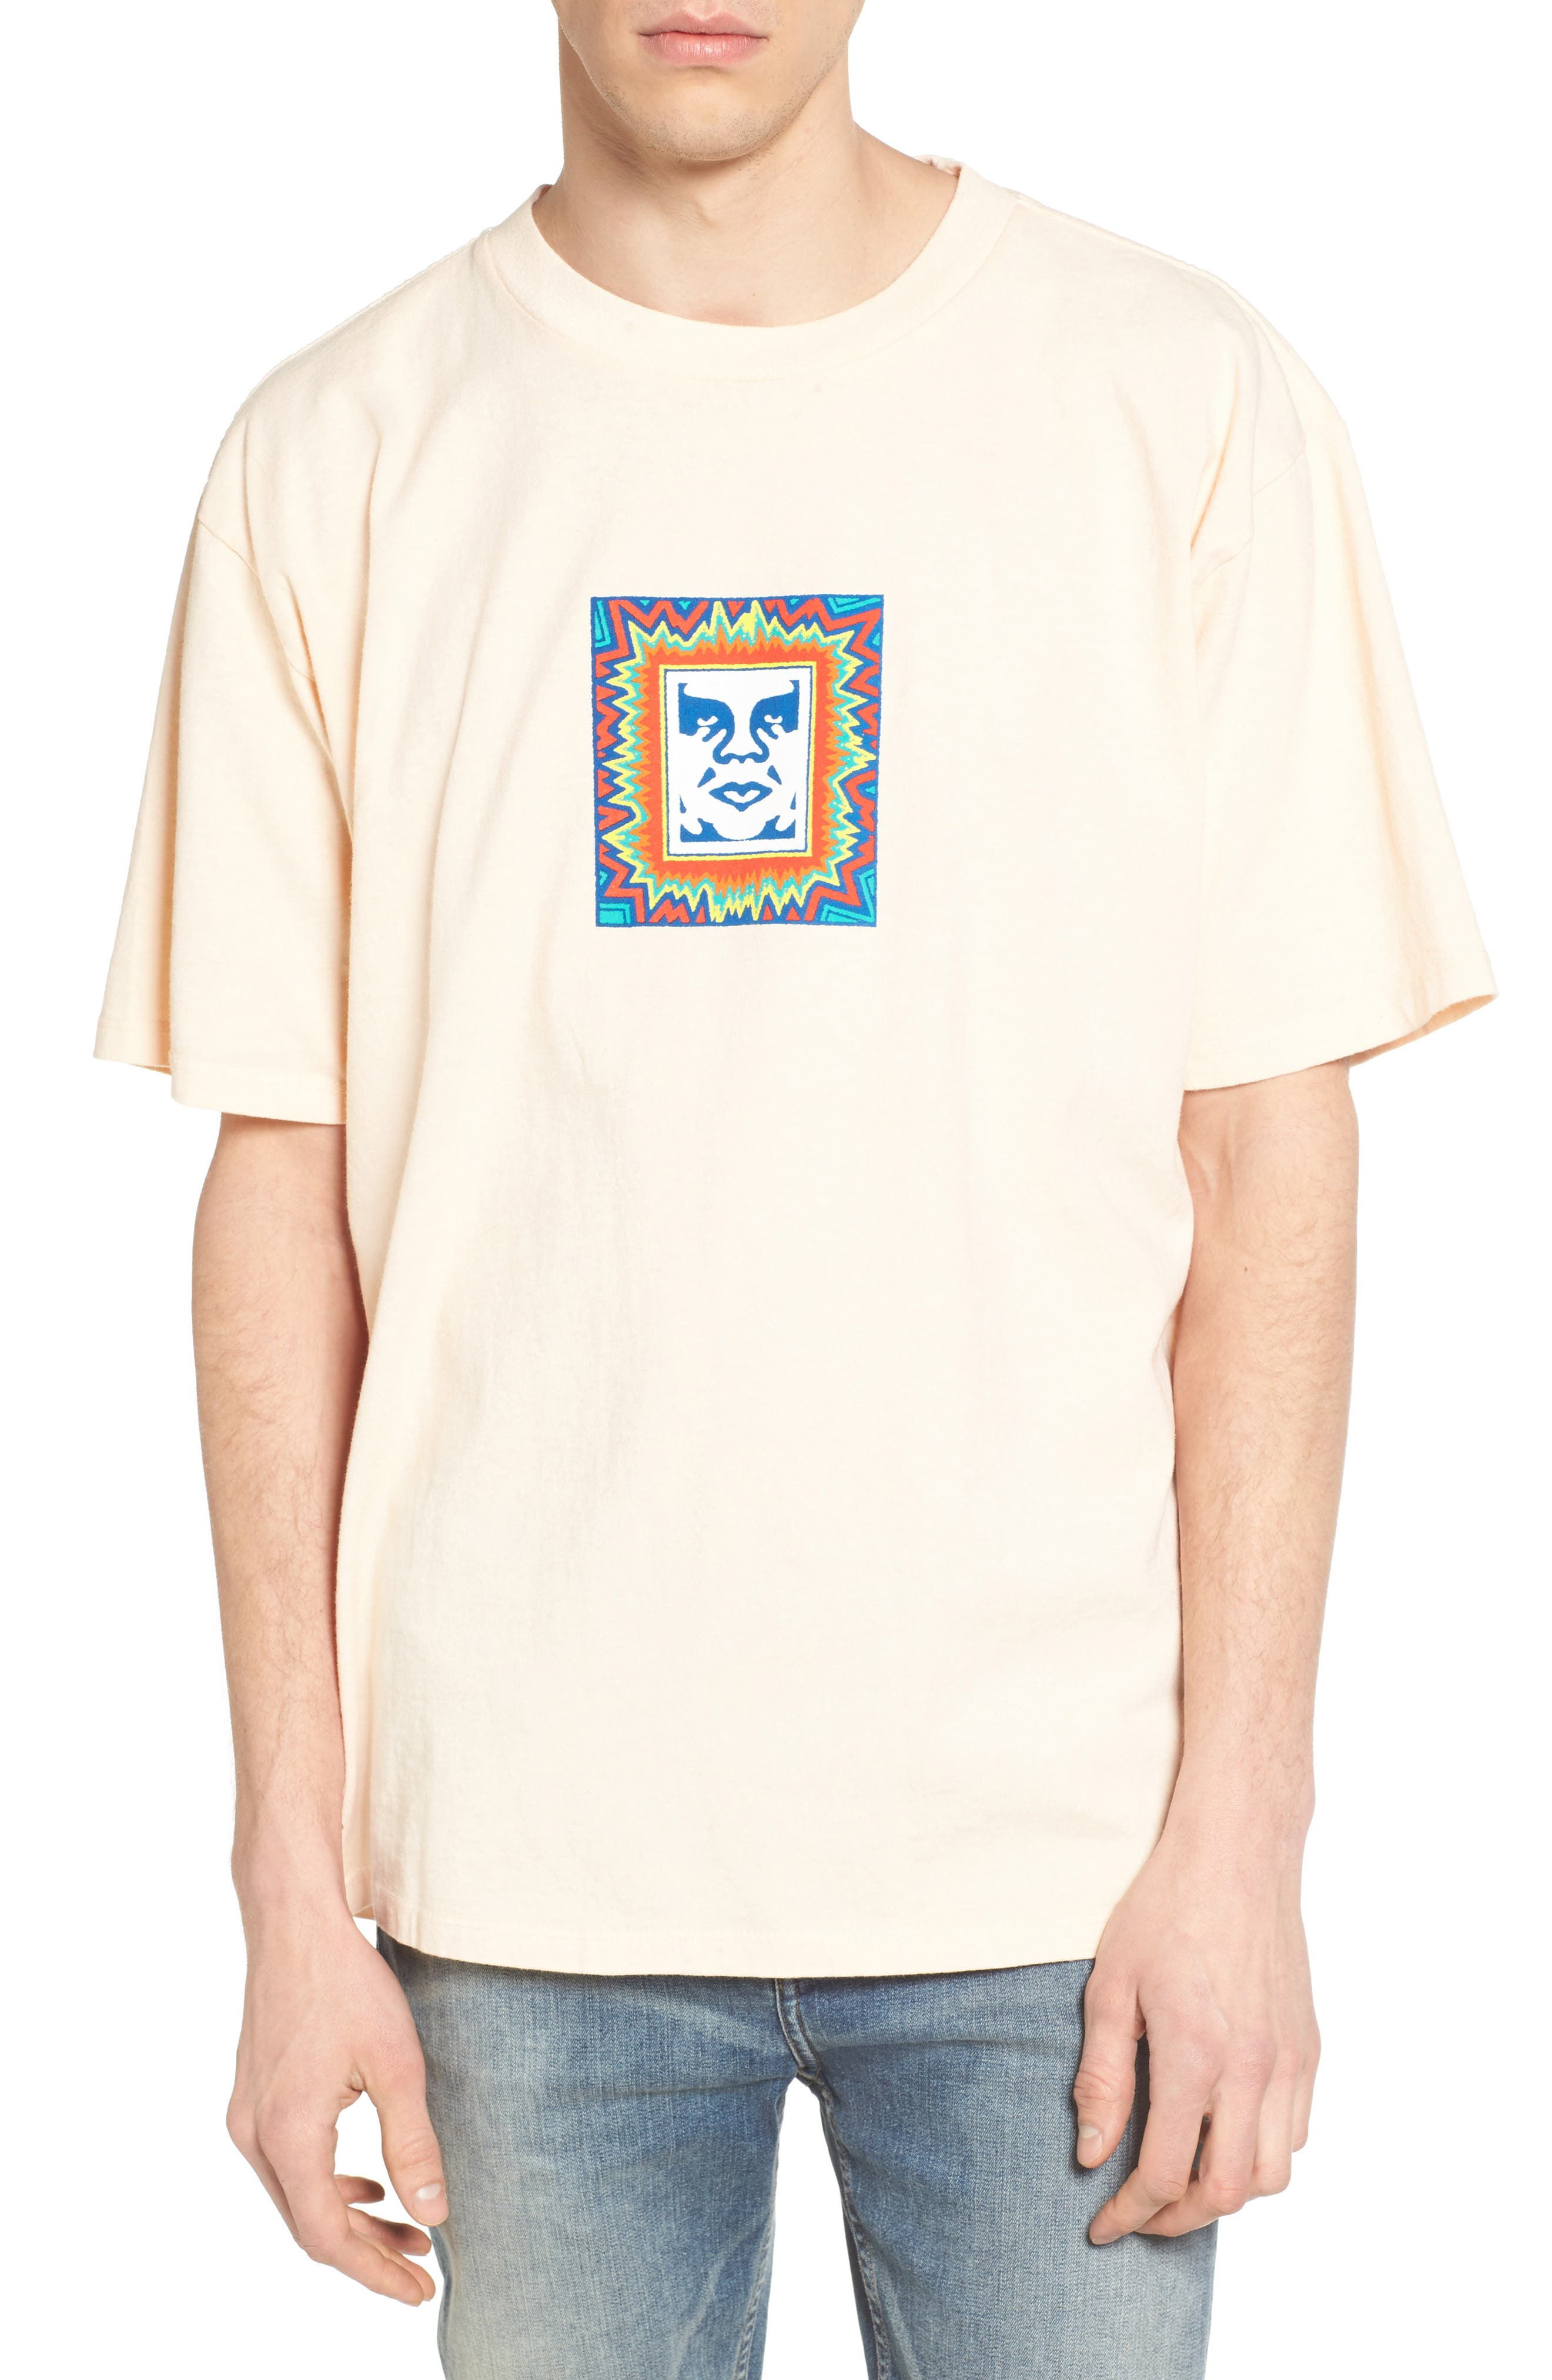 Obey Tripped Box Graphic T-Shirt